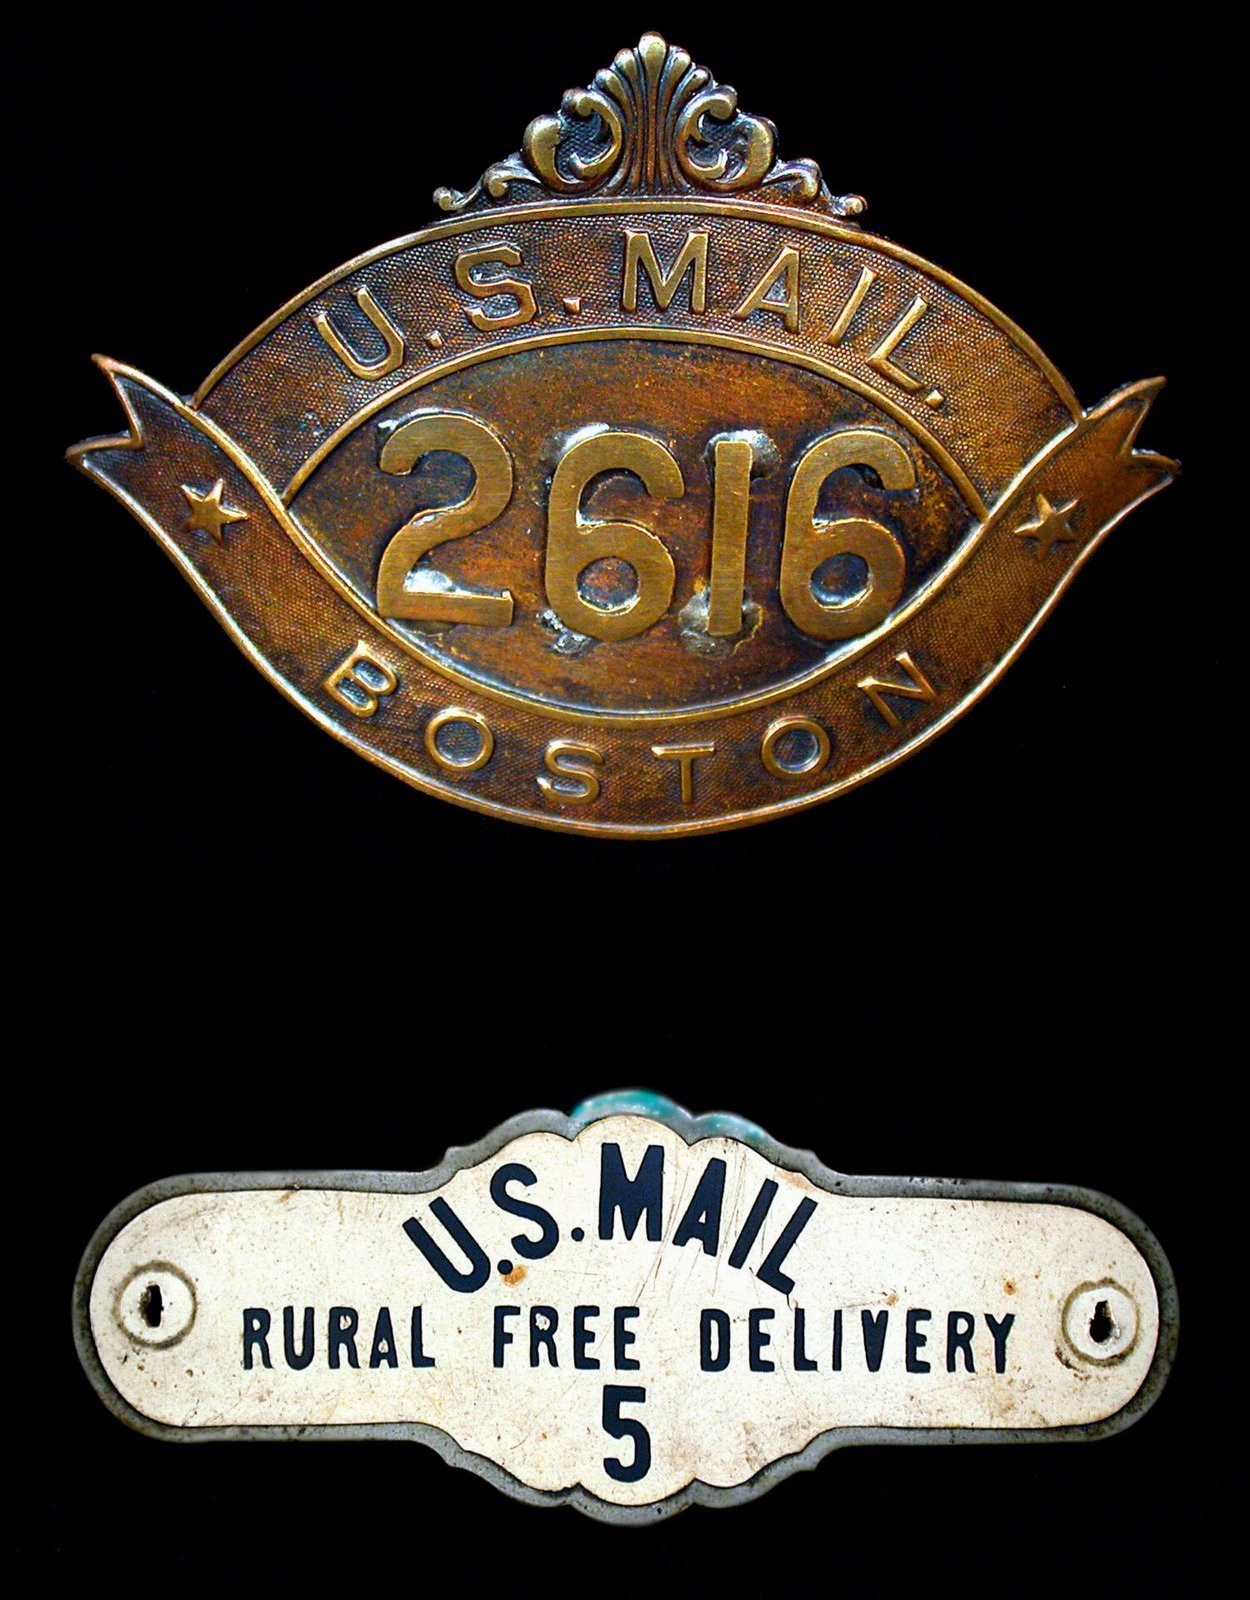 Antique postal worker badges - Rural free delivery and US Mail Boston